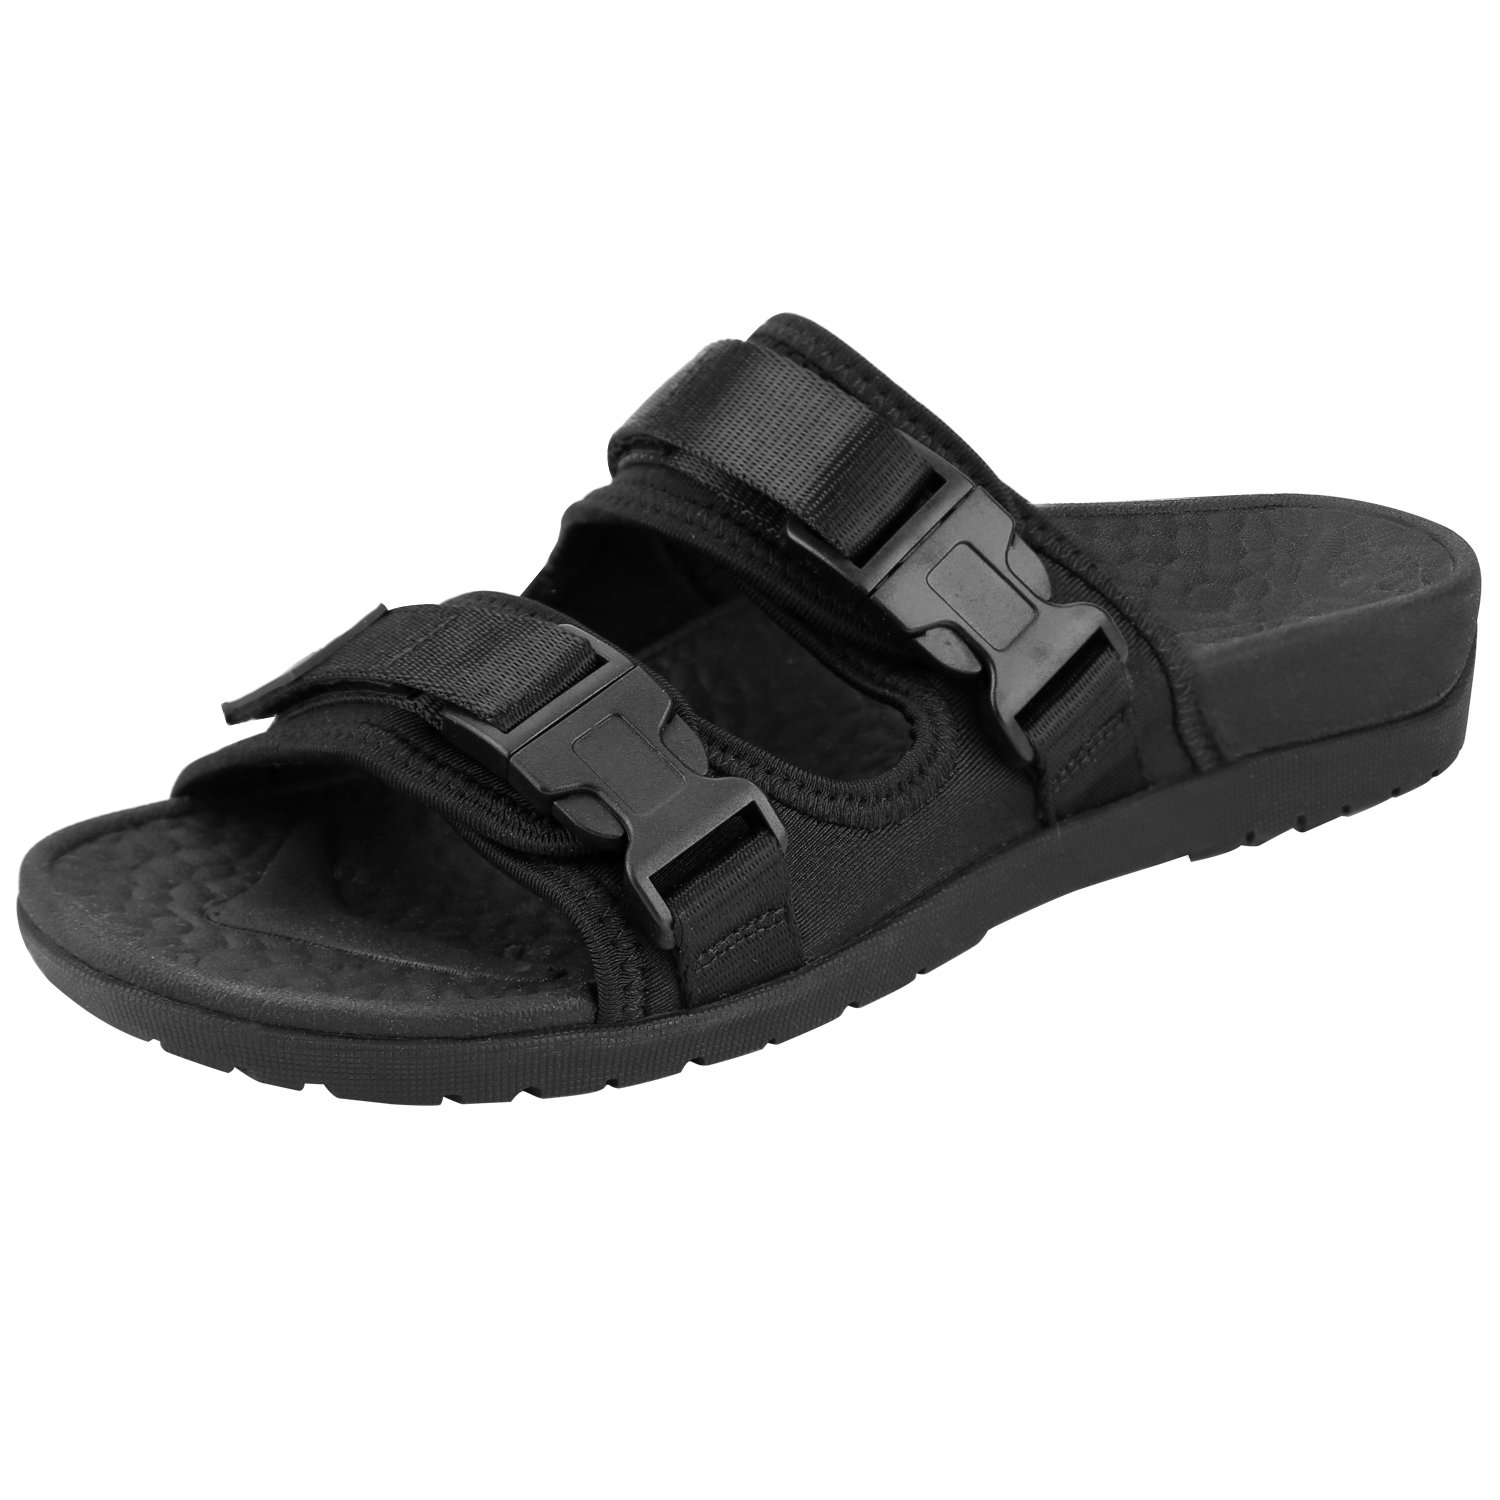 Everhealth Orthotic Sandals Women Buckle Slides Sandal Outdoor Slippers with Arch Support for Plantar Fasciitis (Black 8 US Women/7 US Men) by Everhealth